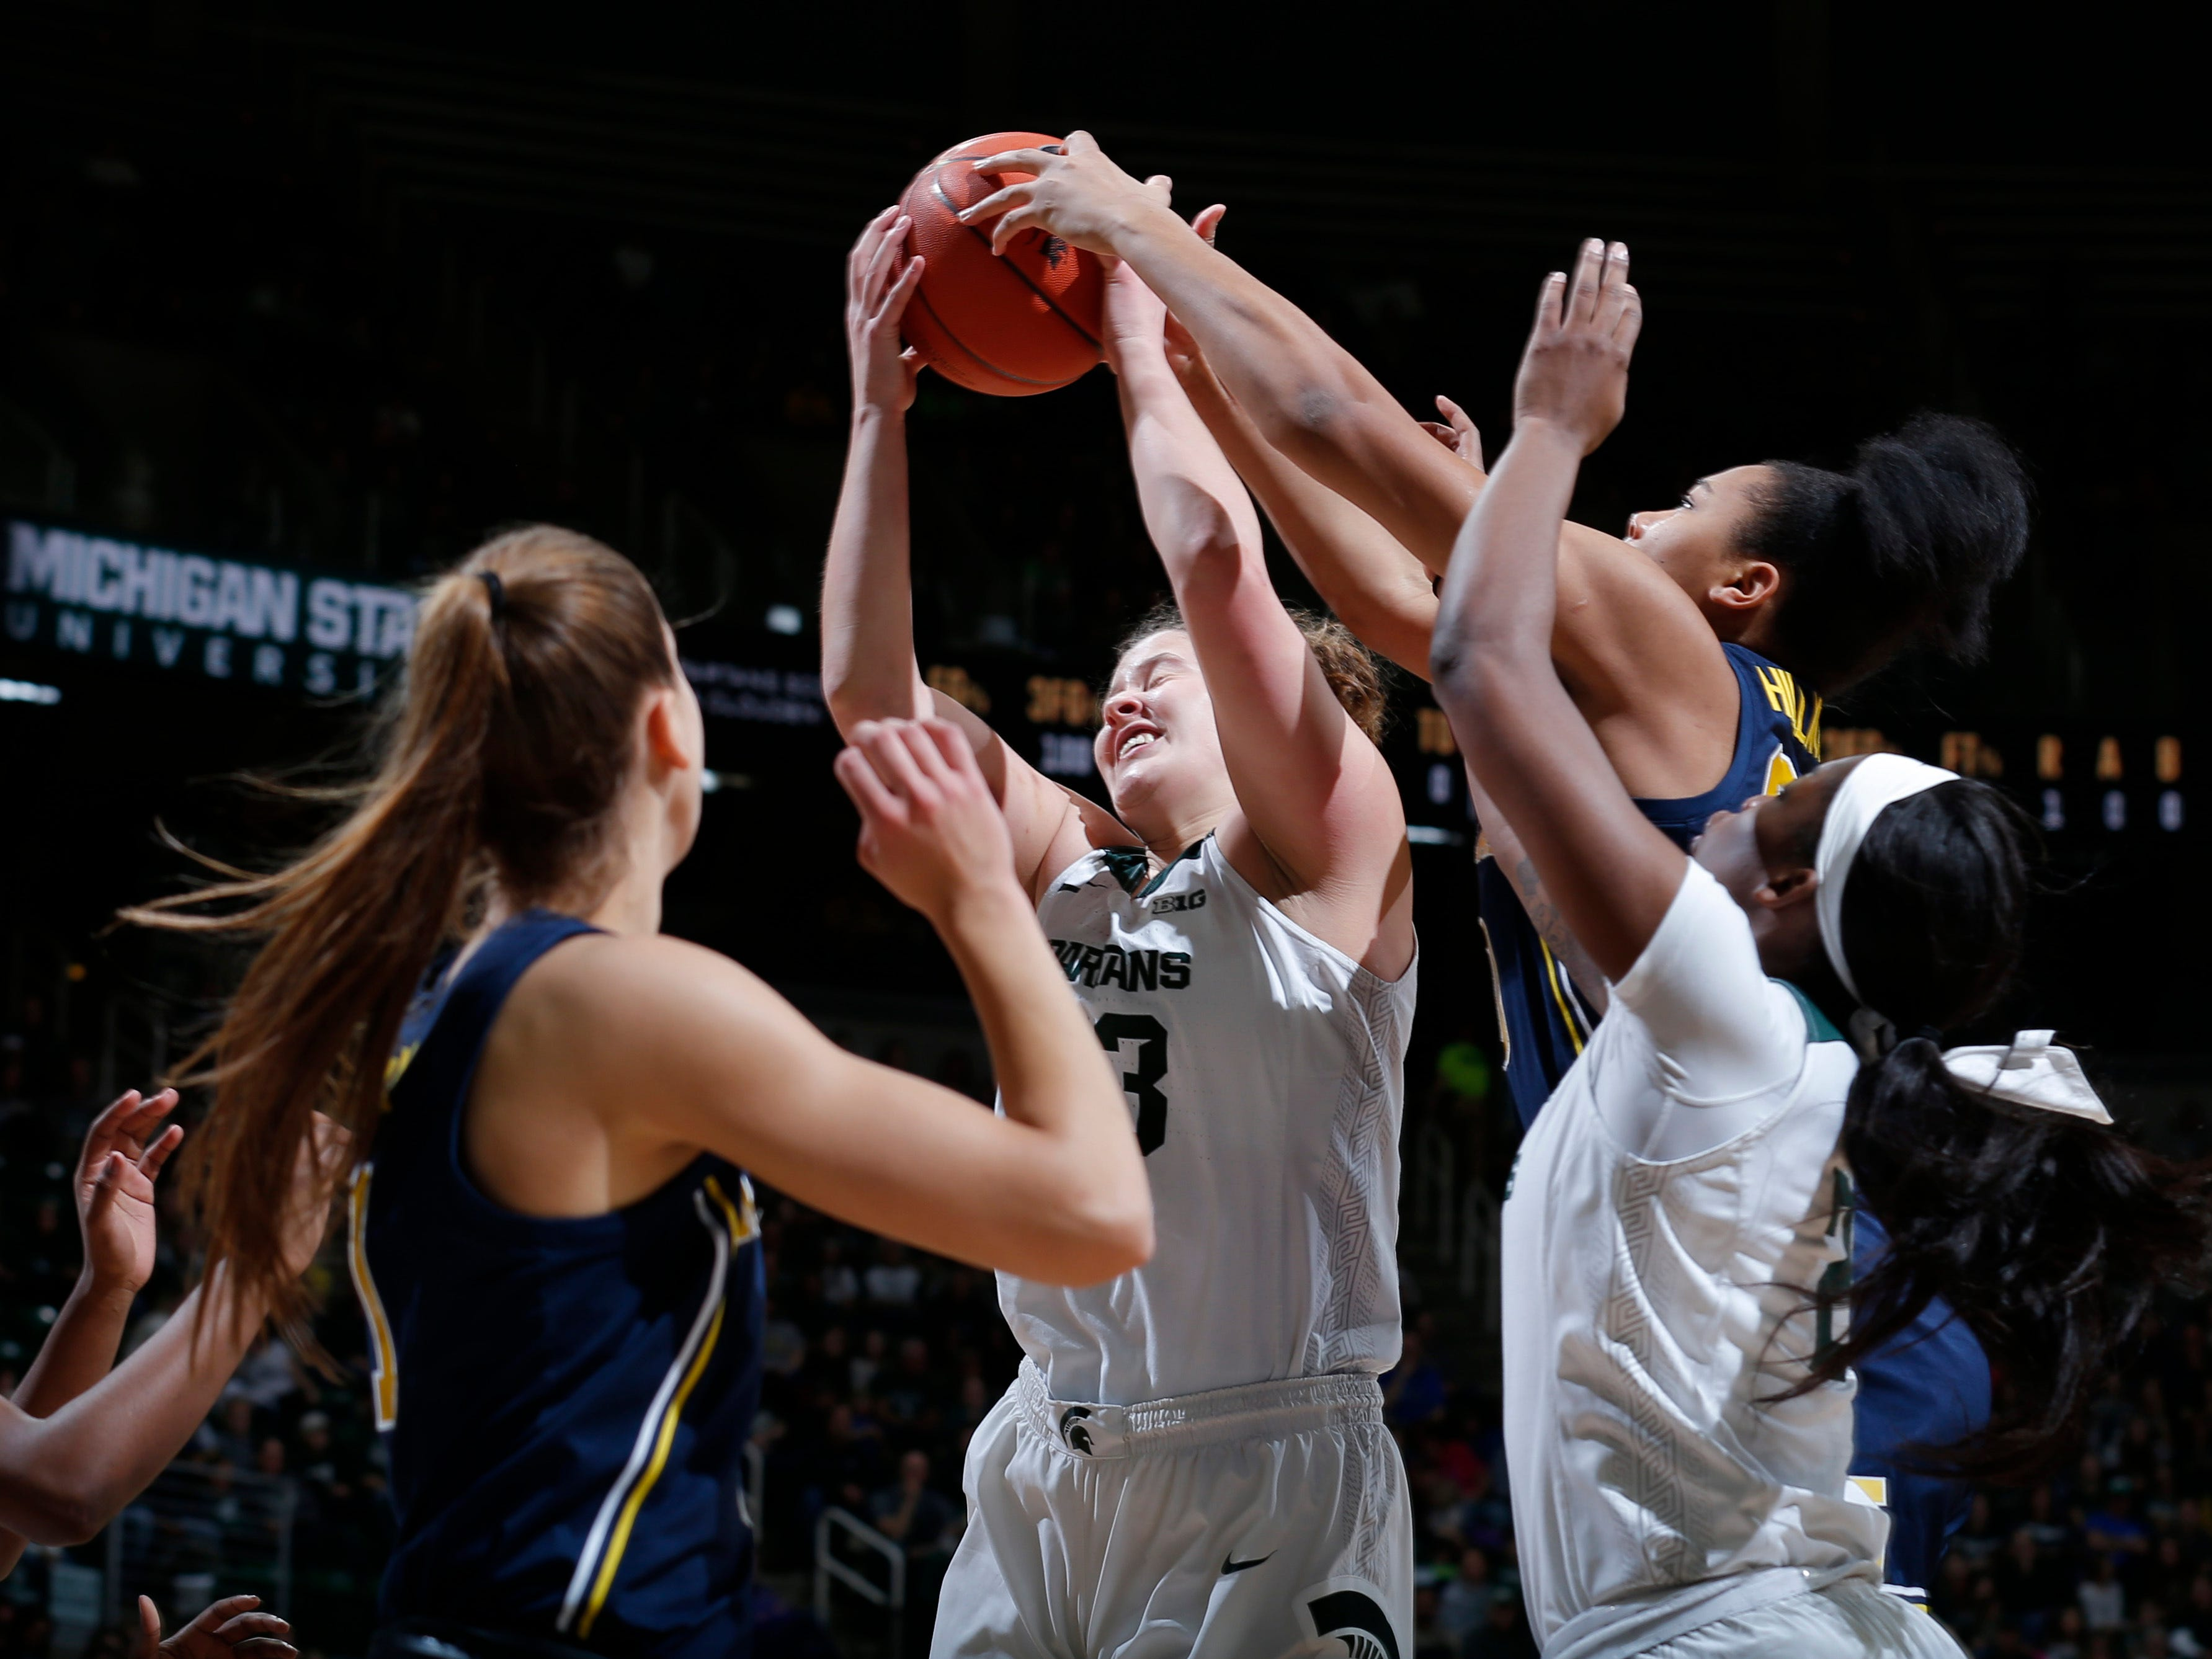 Michigan State's Jenna Allen, center, and Mardrekia Cook, right, and Michigan's Amy Dilk, left, and Naz Hillmon, top right, battle for a rebound.